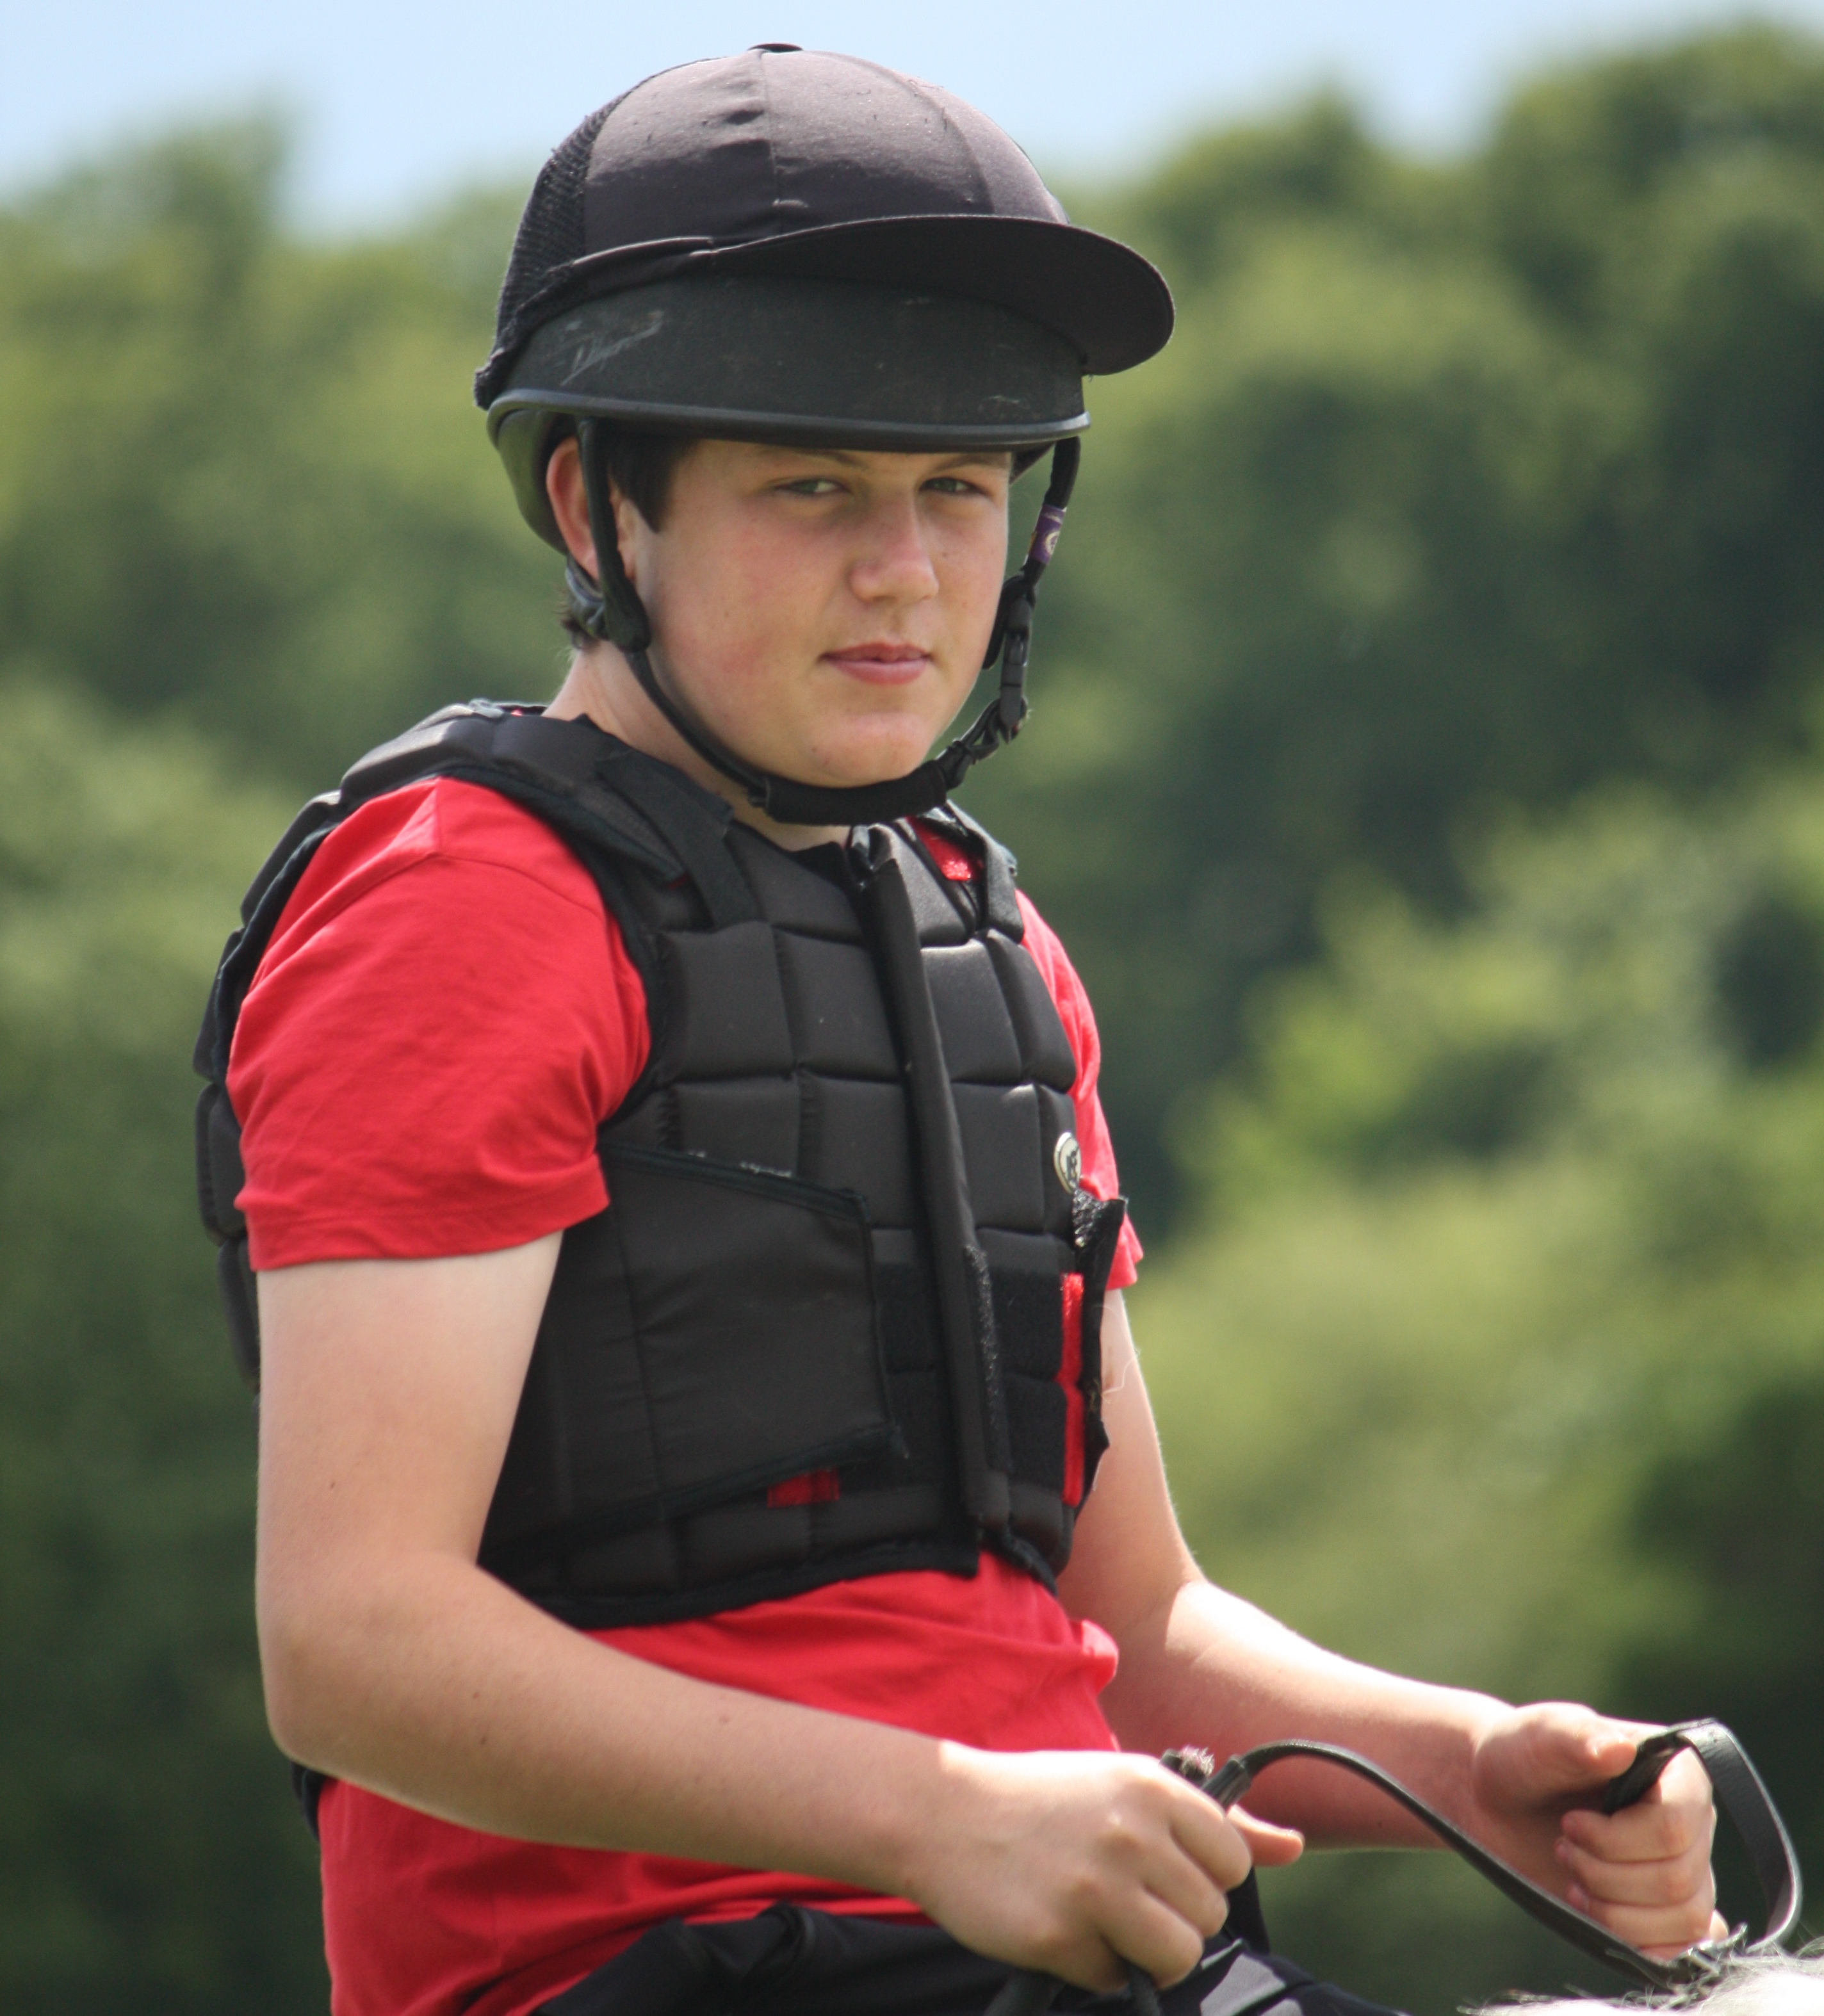 2014_07_08_laois hunt pc pony camp 2014_7412.jpg